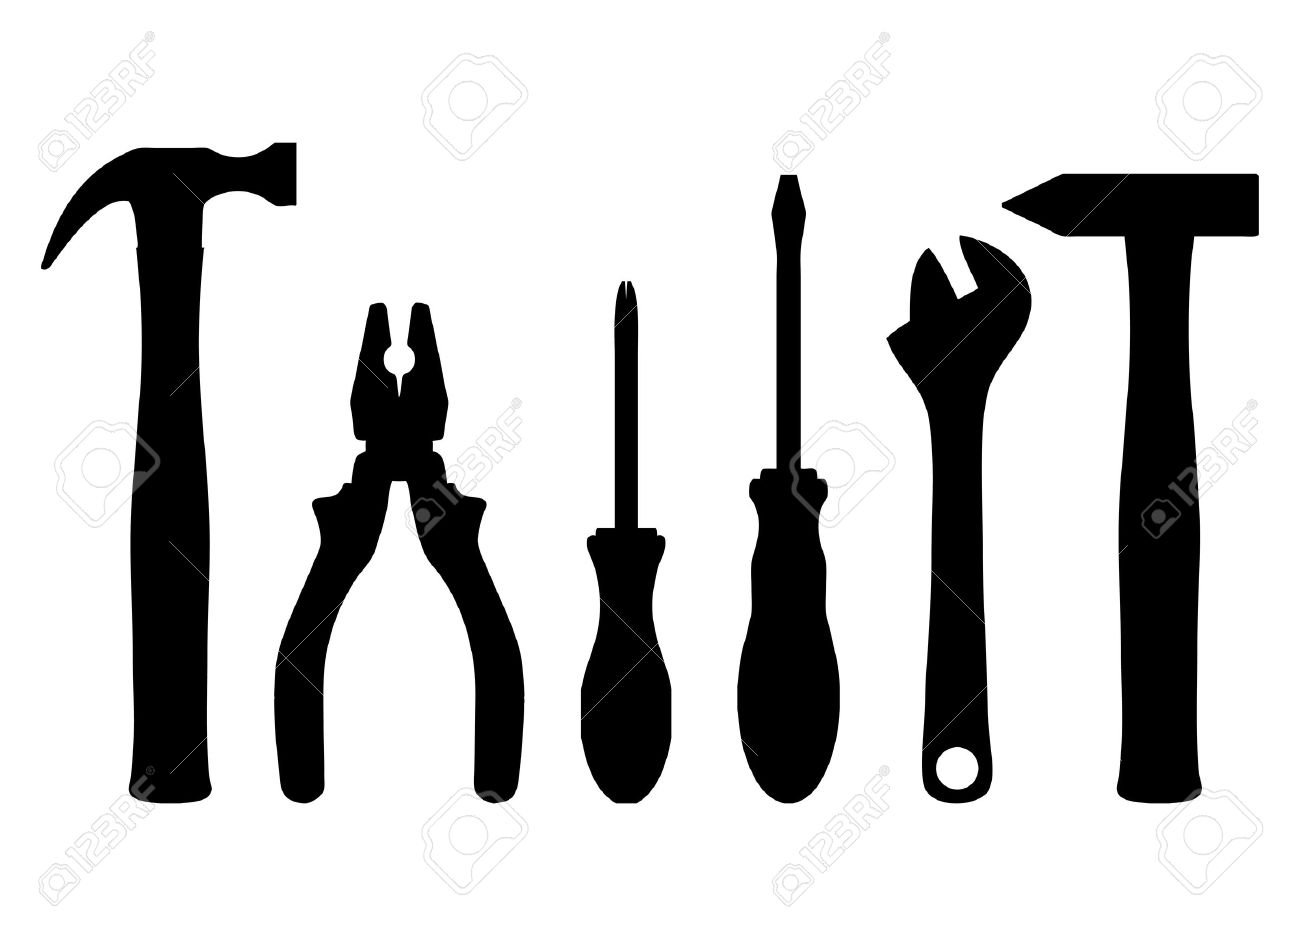 vector illustration of work tools royalty free cliparts vectors